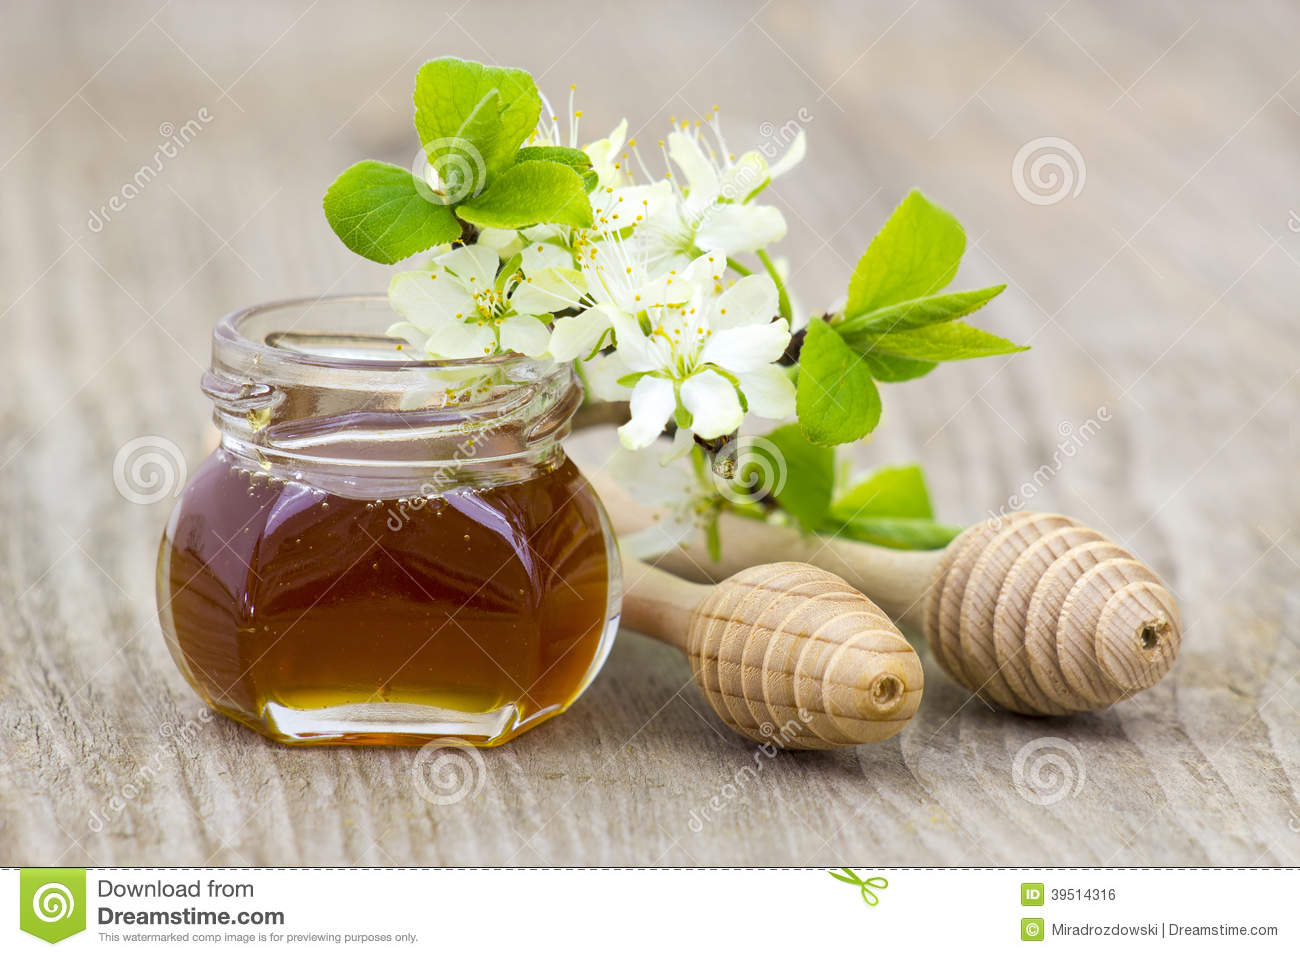 Honey in a jar, flowers and honey dippers